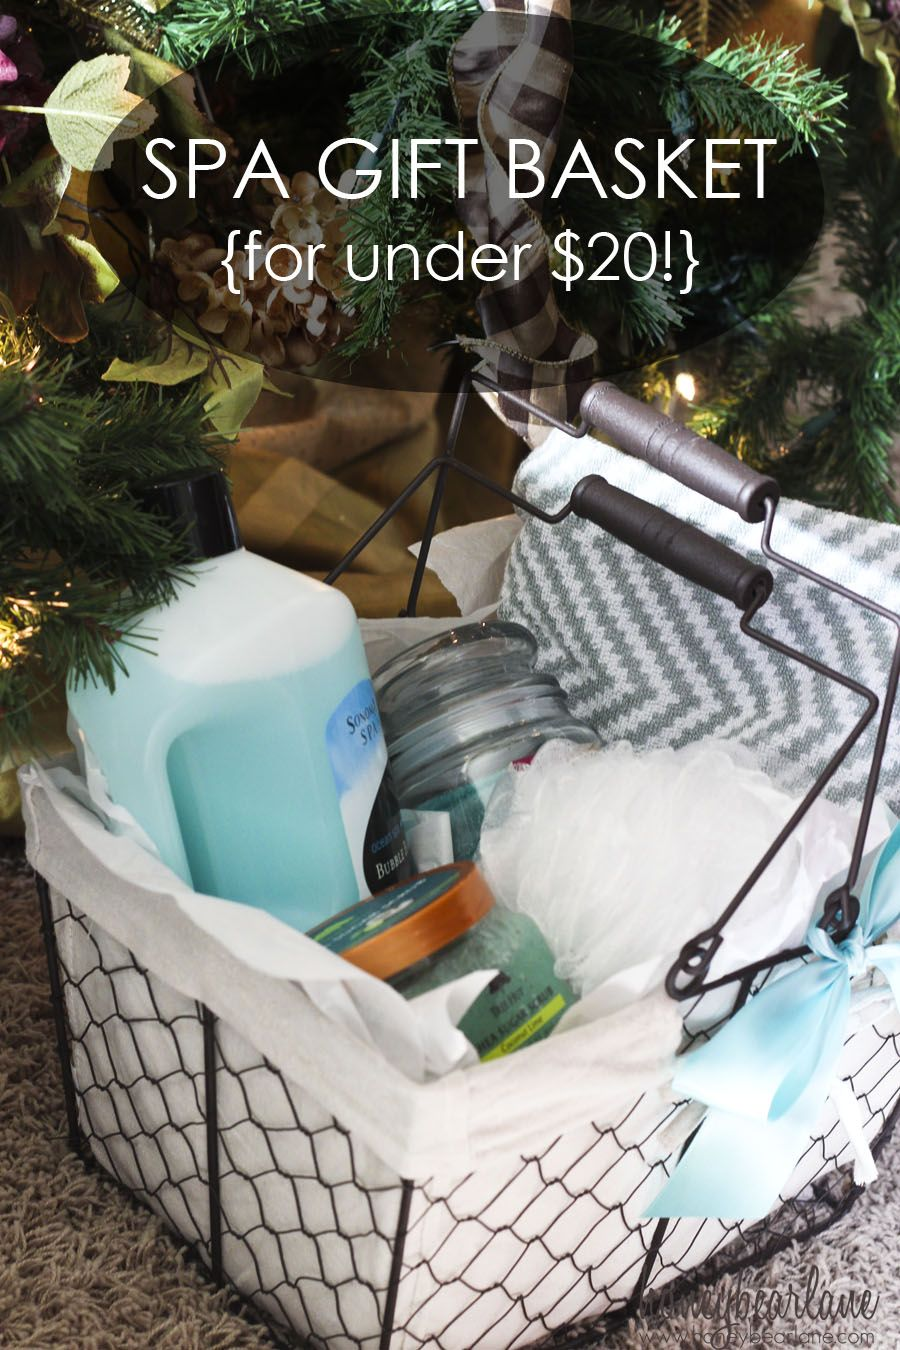 Check out this clever gift idea for under $20. Make your own p&ering spa gift basket for anyone to enjoy! & Gift Idea for Under $20 | Raffle Baskets | Pinterest | Regalos ...